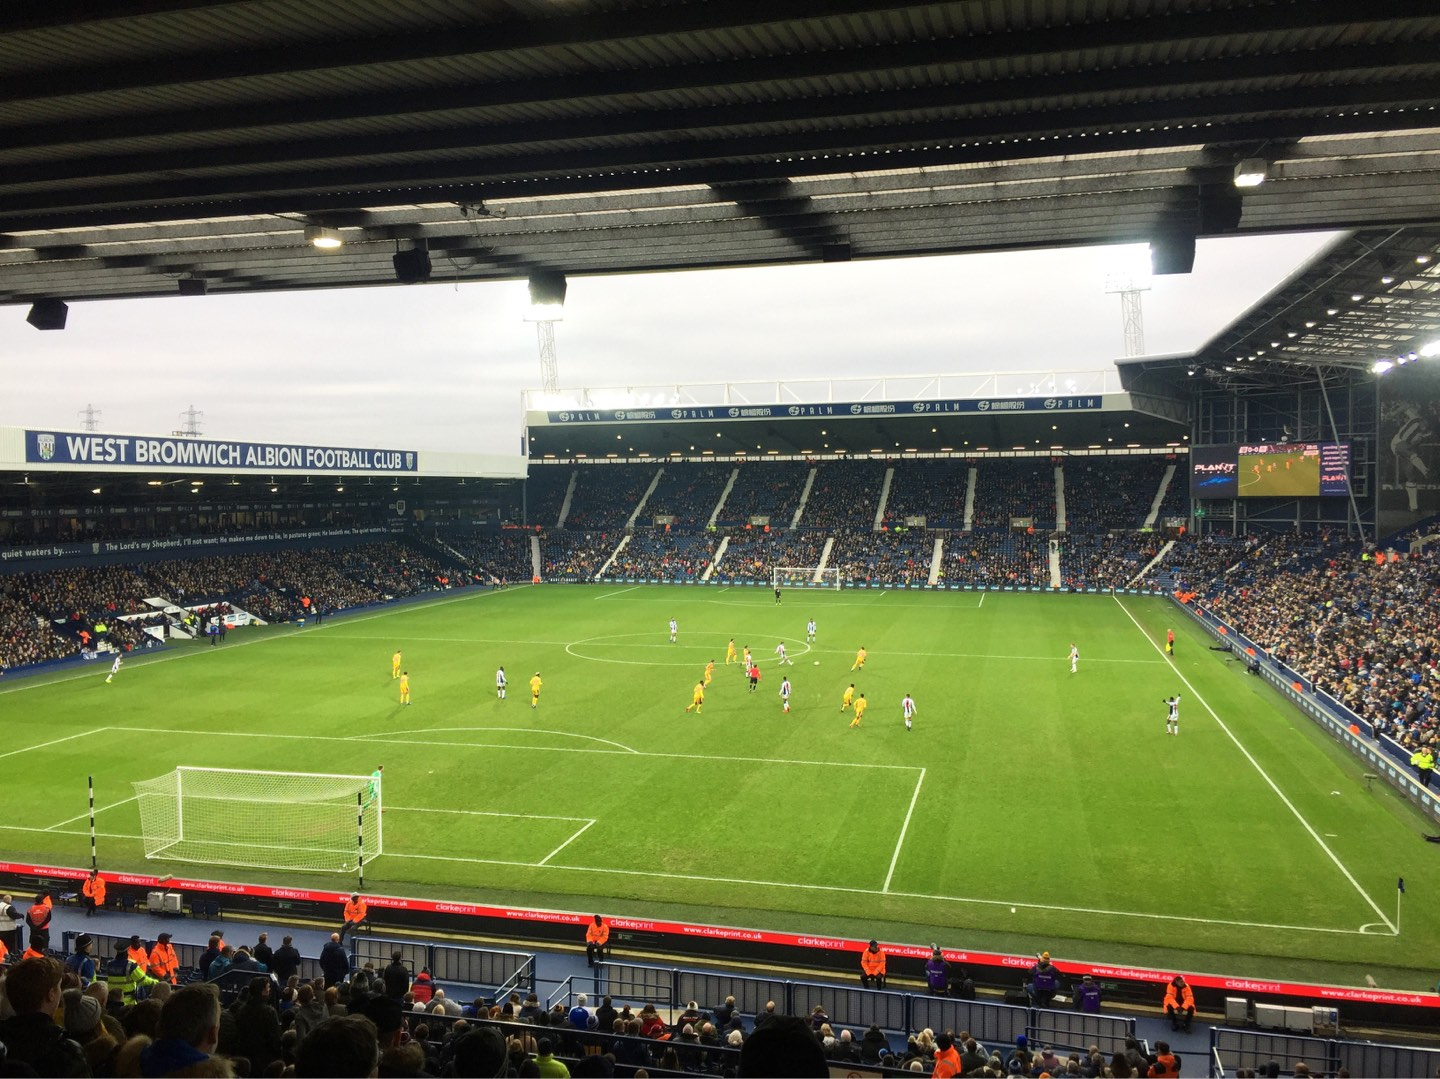 The Hawthorns Section A2 Row SS Seat 20